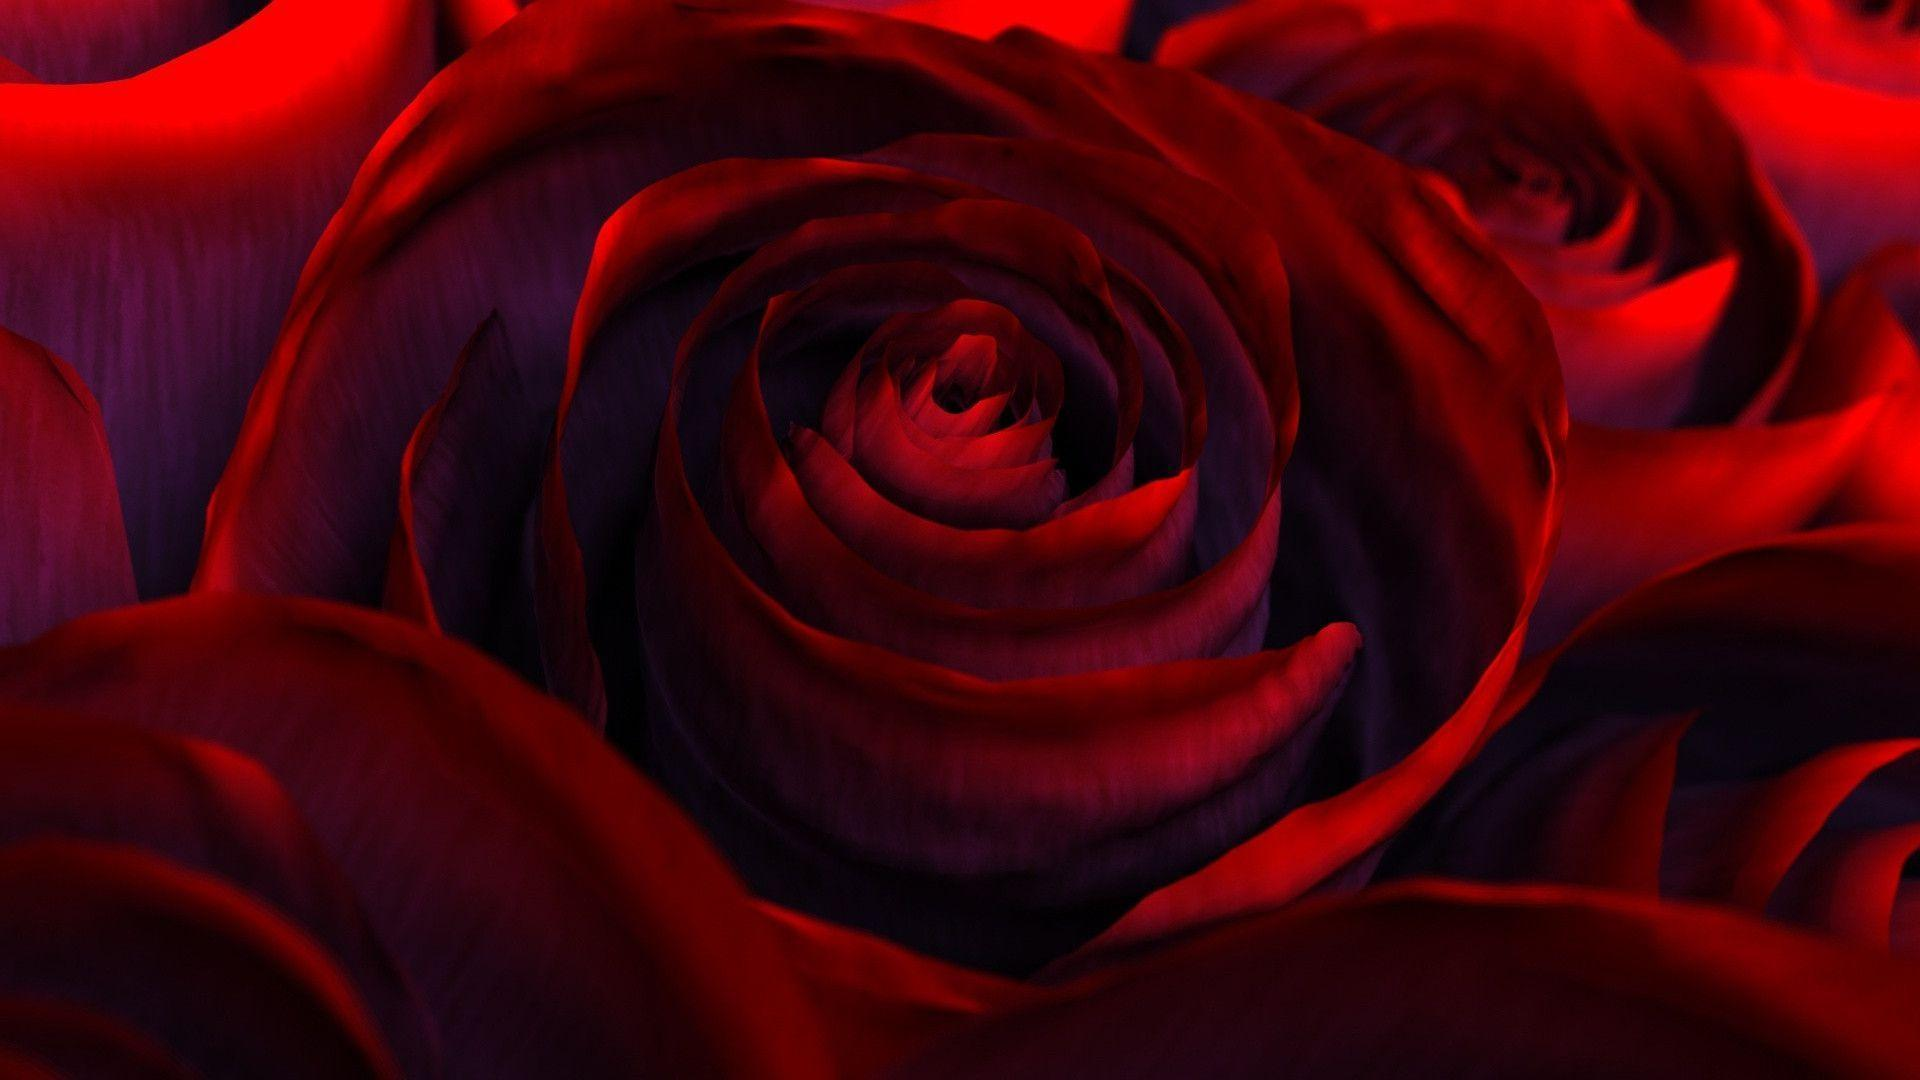 deep red rose wallpapers - DriverLayer Search Engine